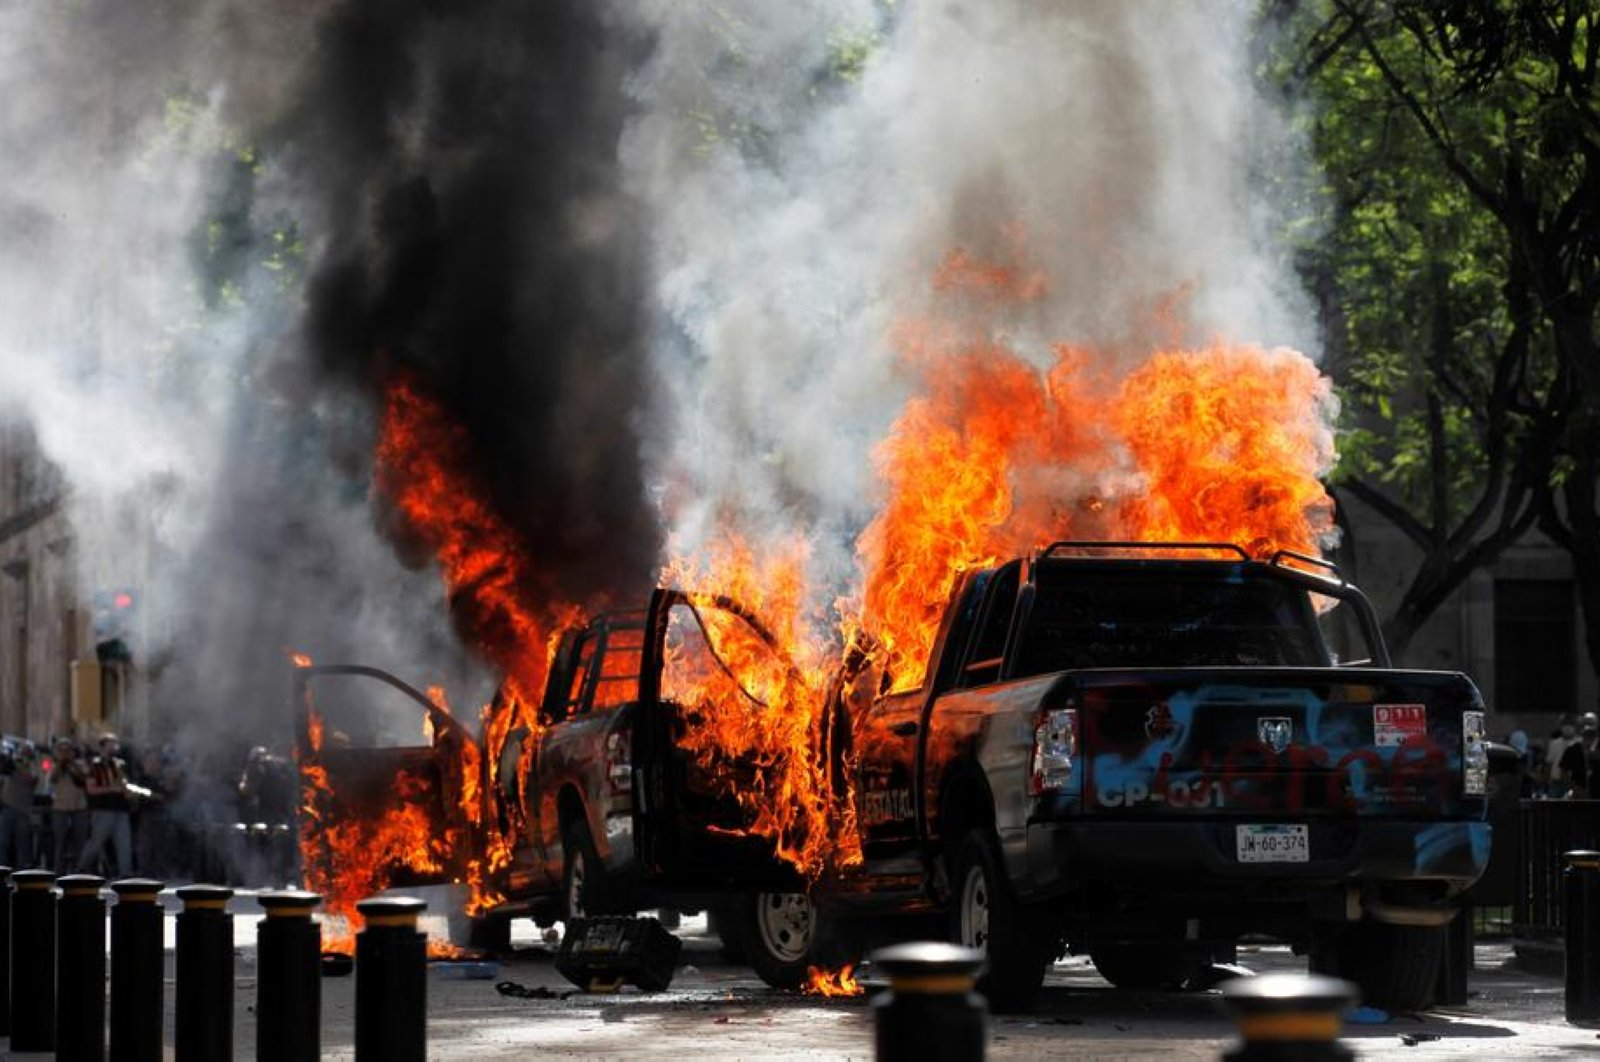 Two police cars burn after they were set on fire during a protest following the death of Giovanni Lopez, Guadalajara, Mexico, June 4, 2020. (EPA Photo)